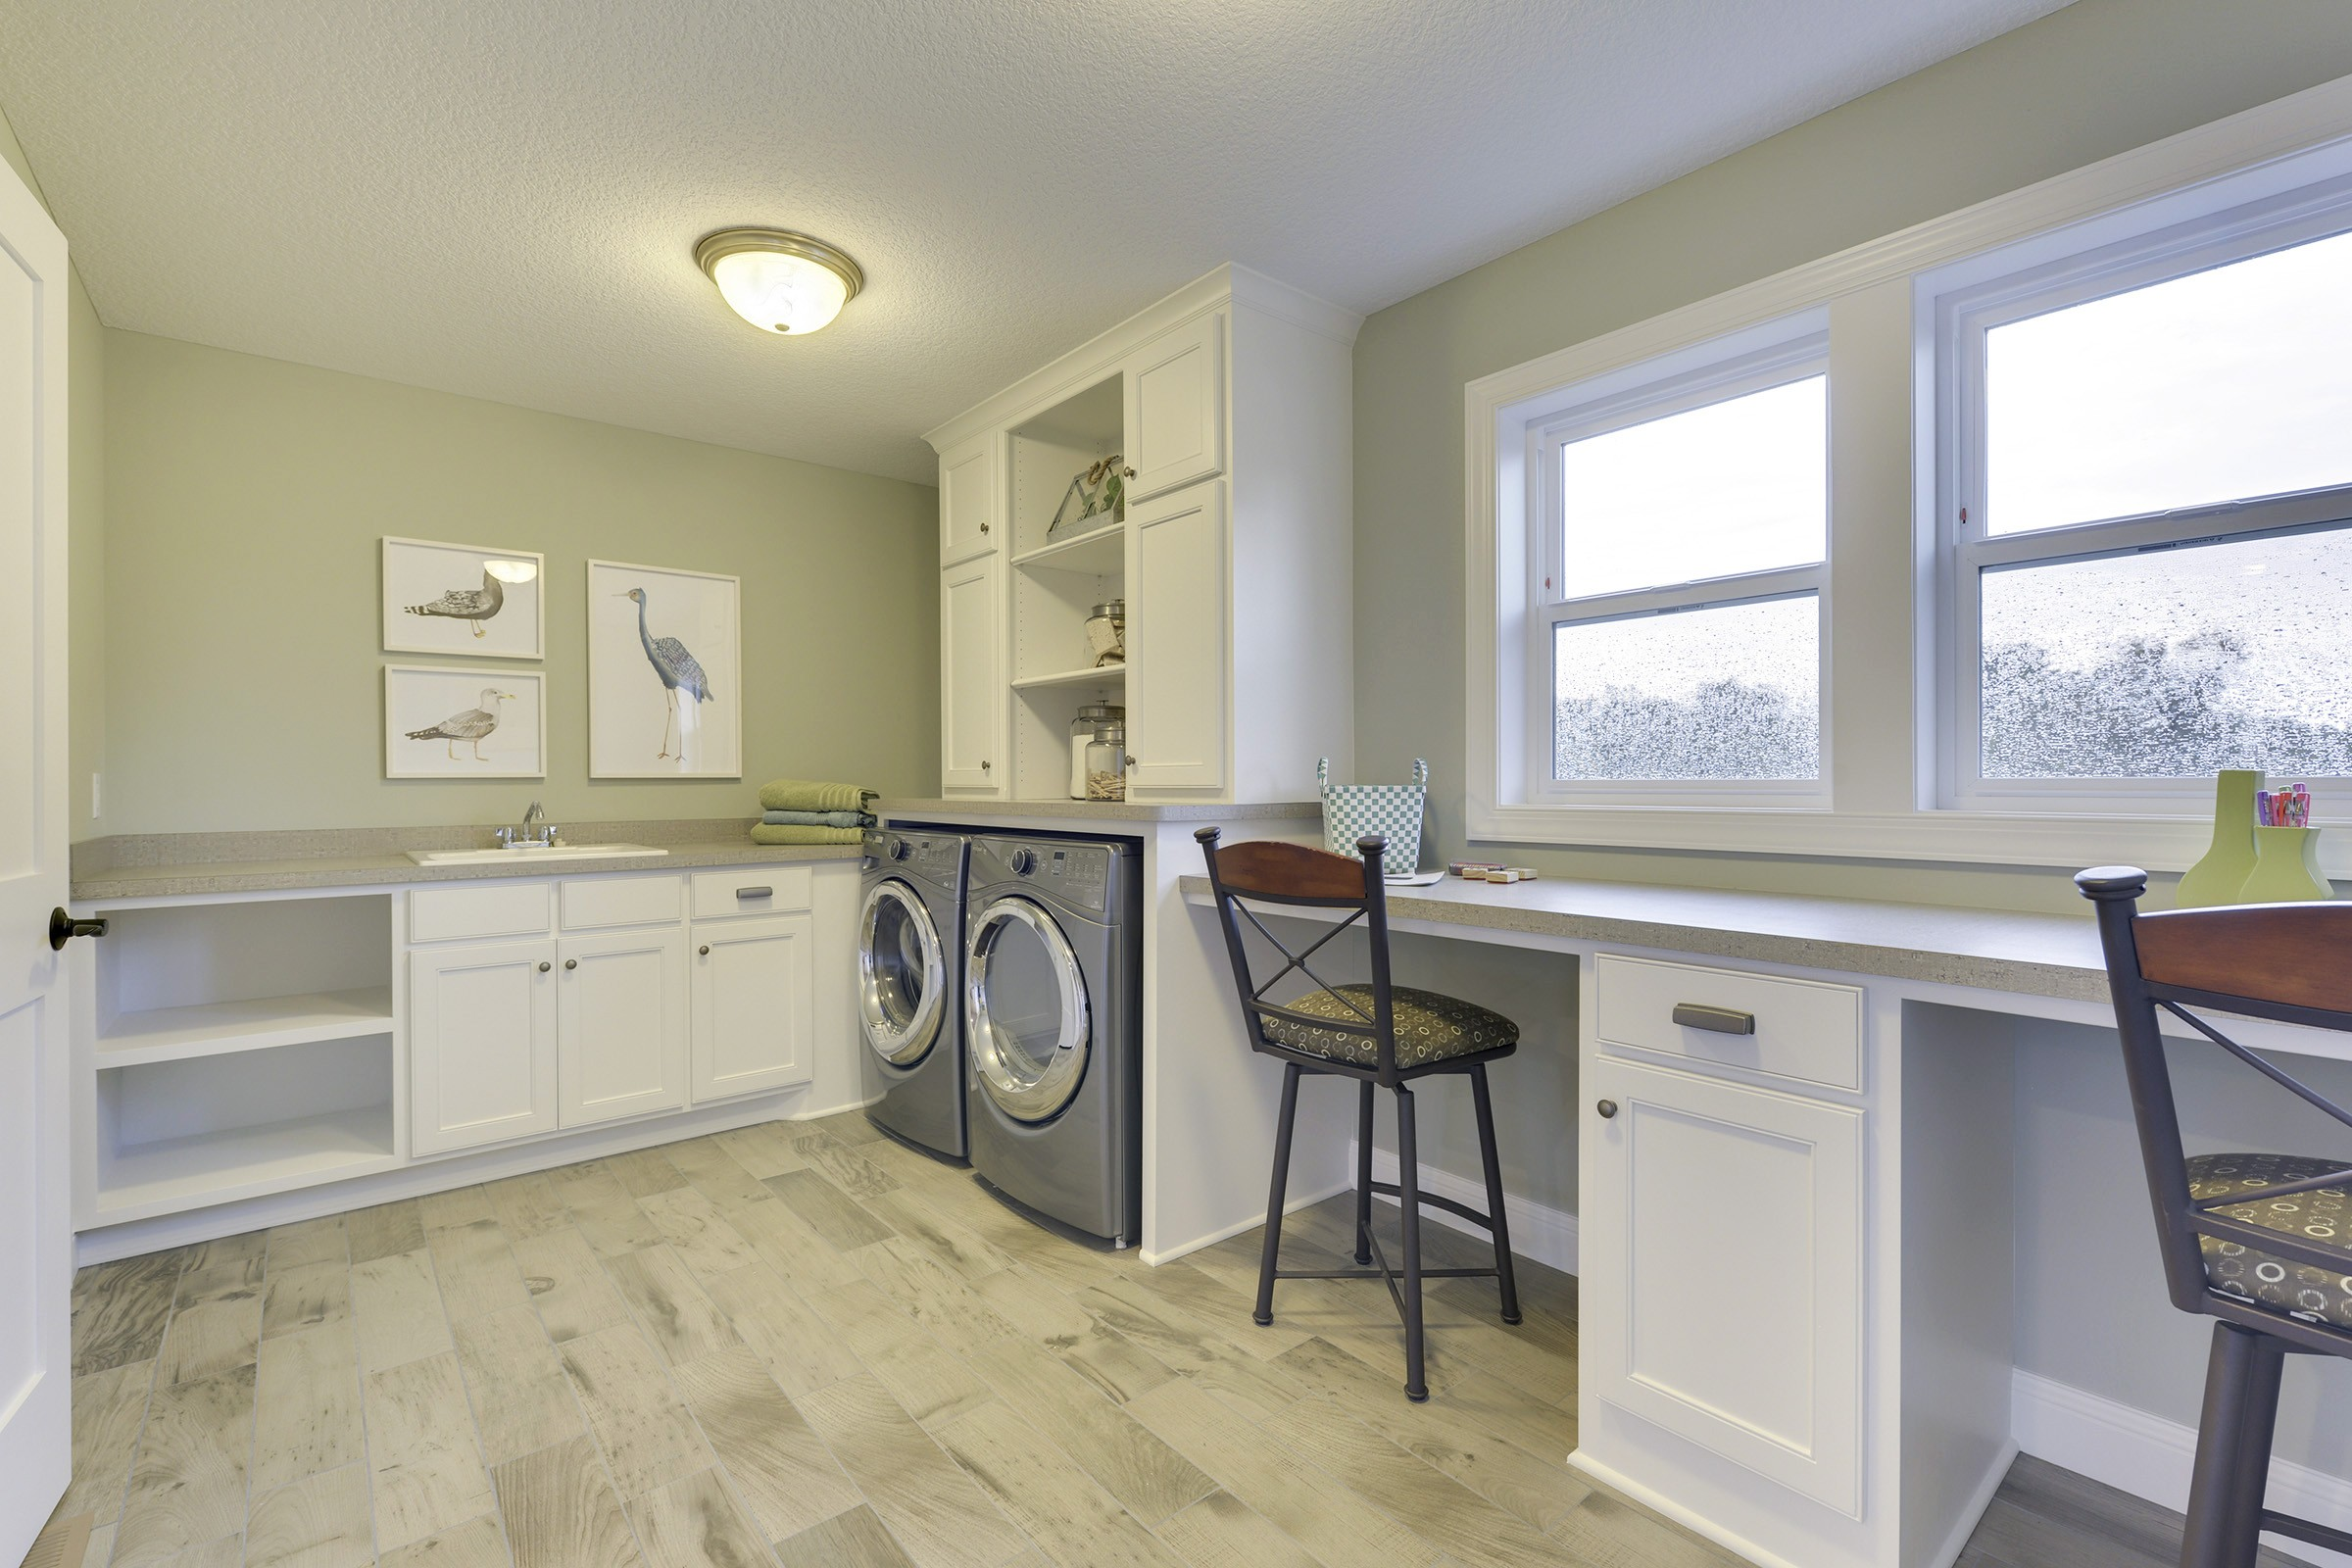 Optimized laundry room for multi-purpose use